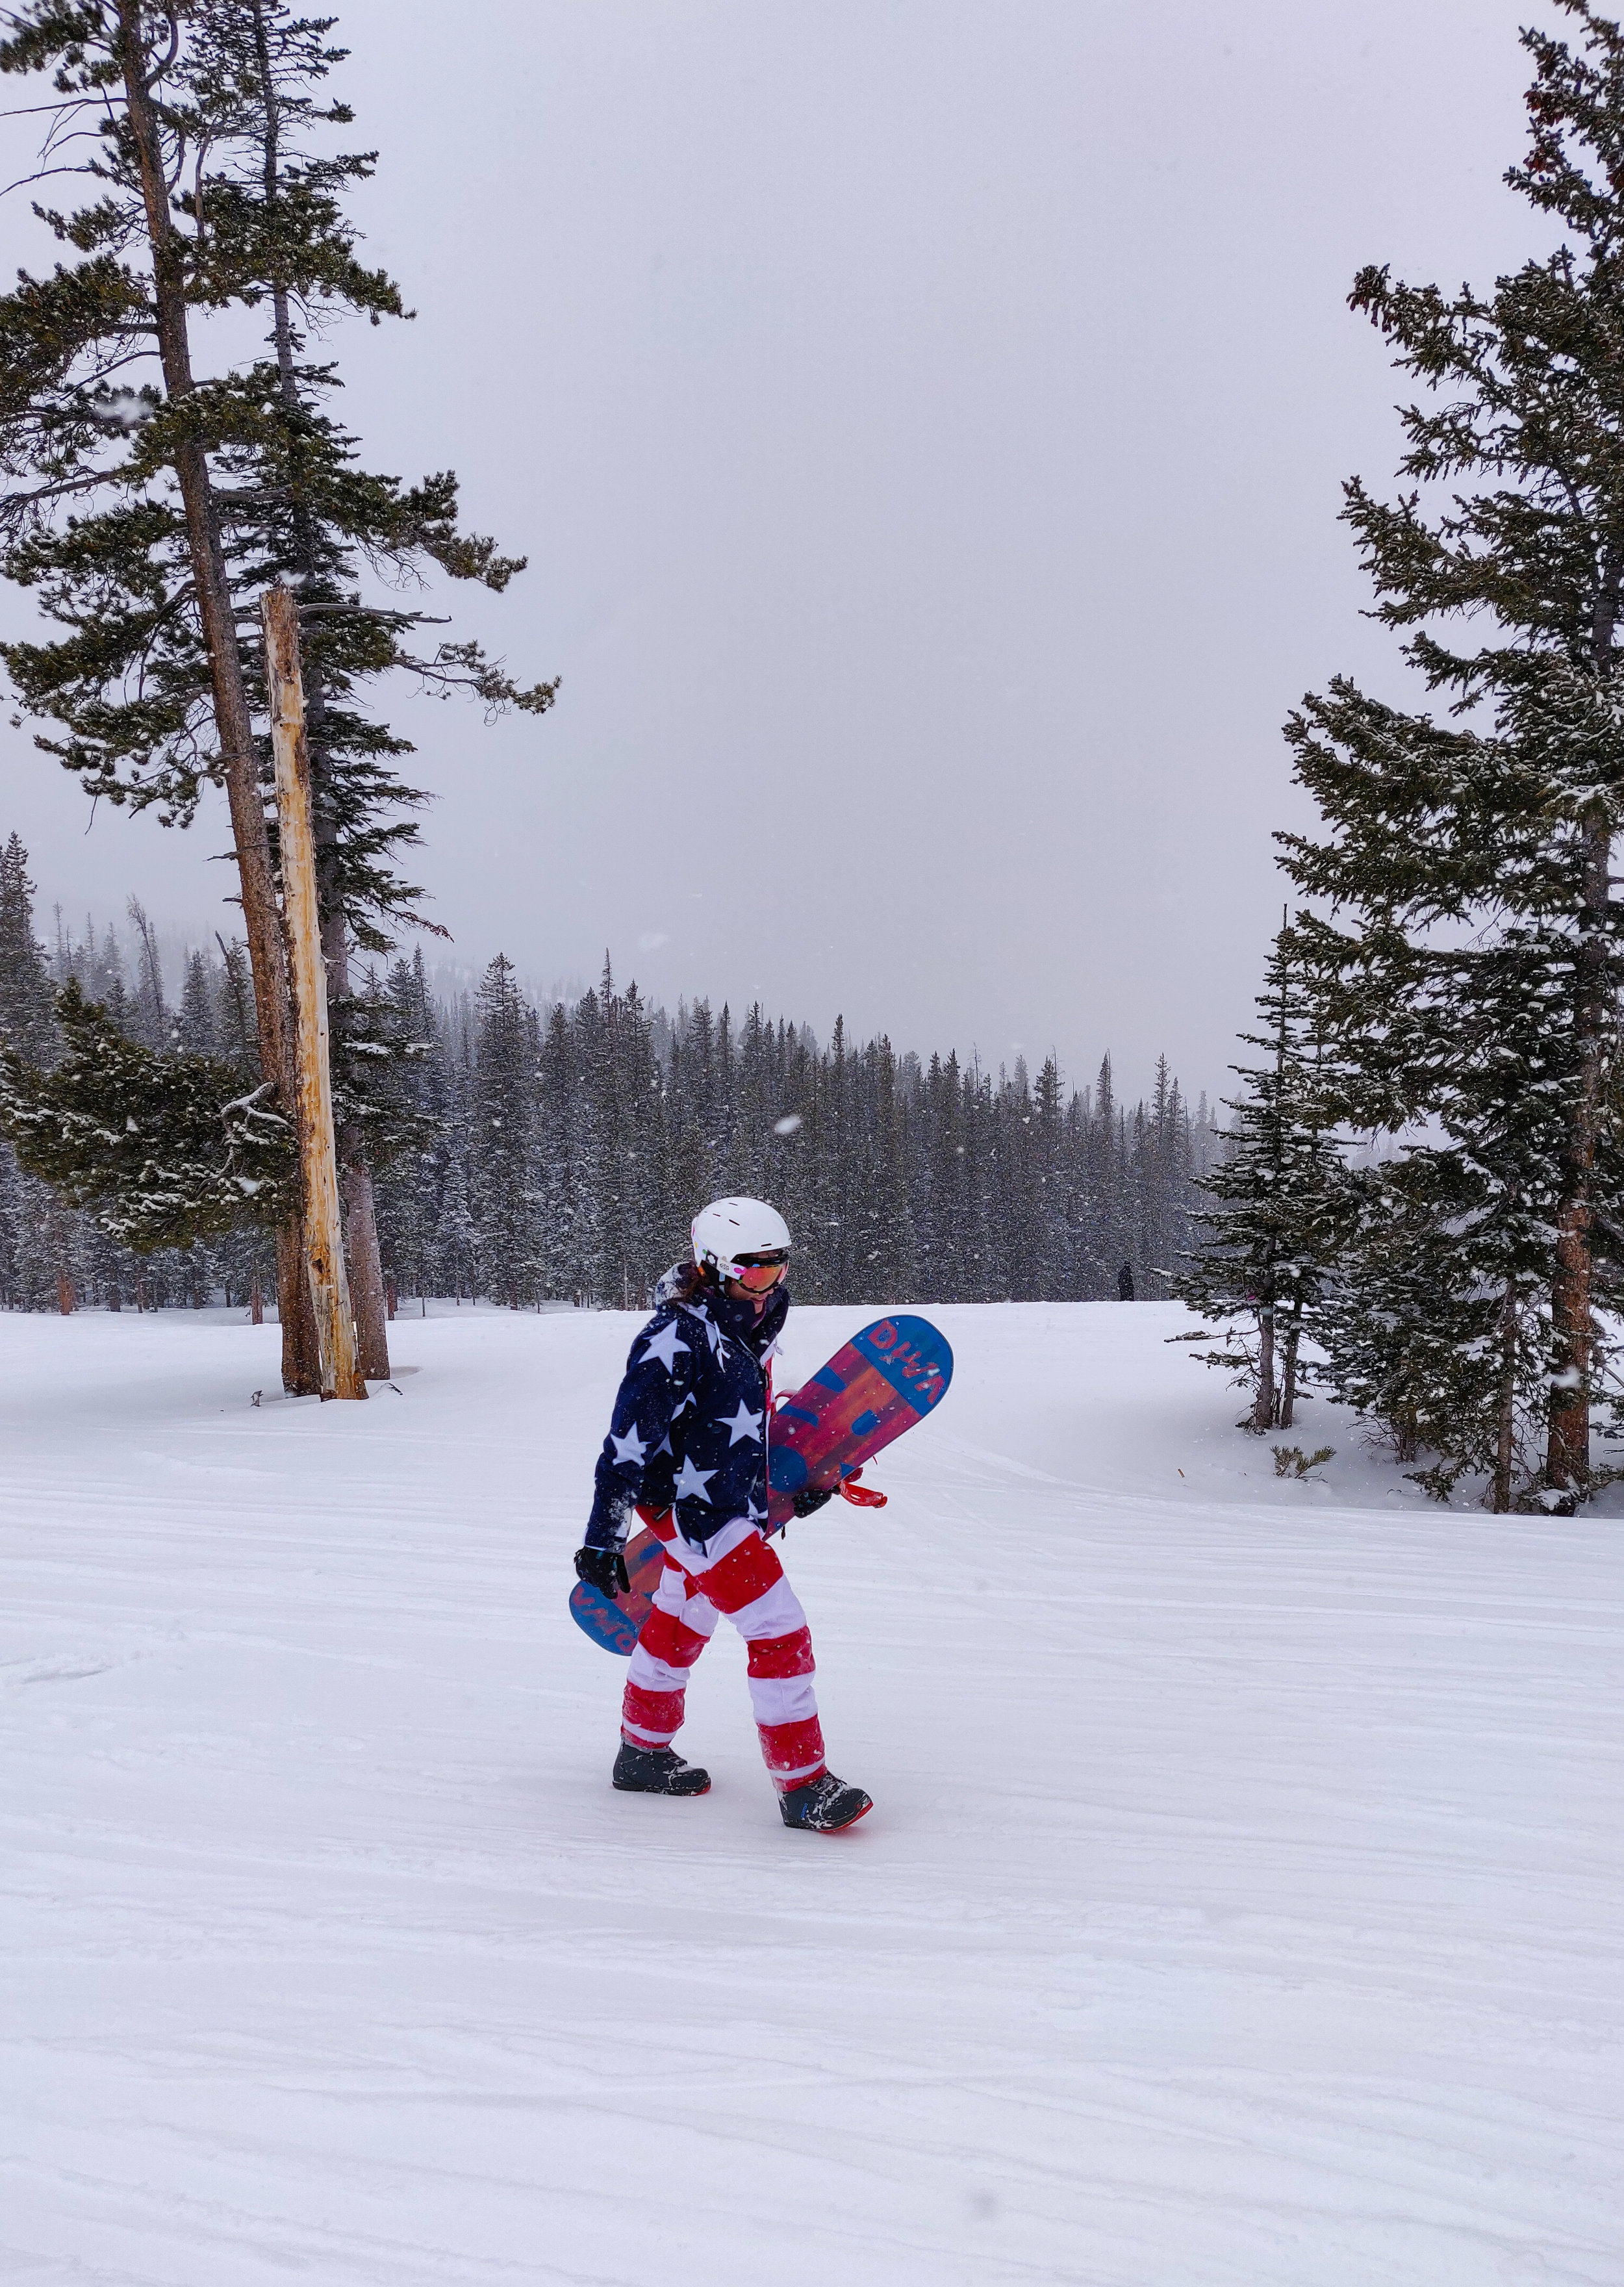 snowboarding-colorado-winter-park